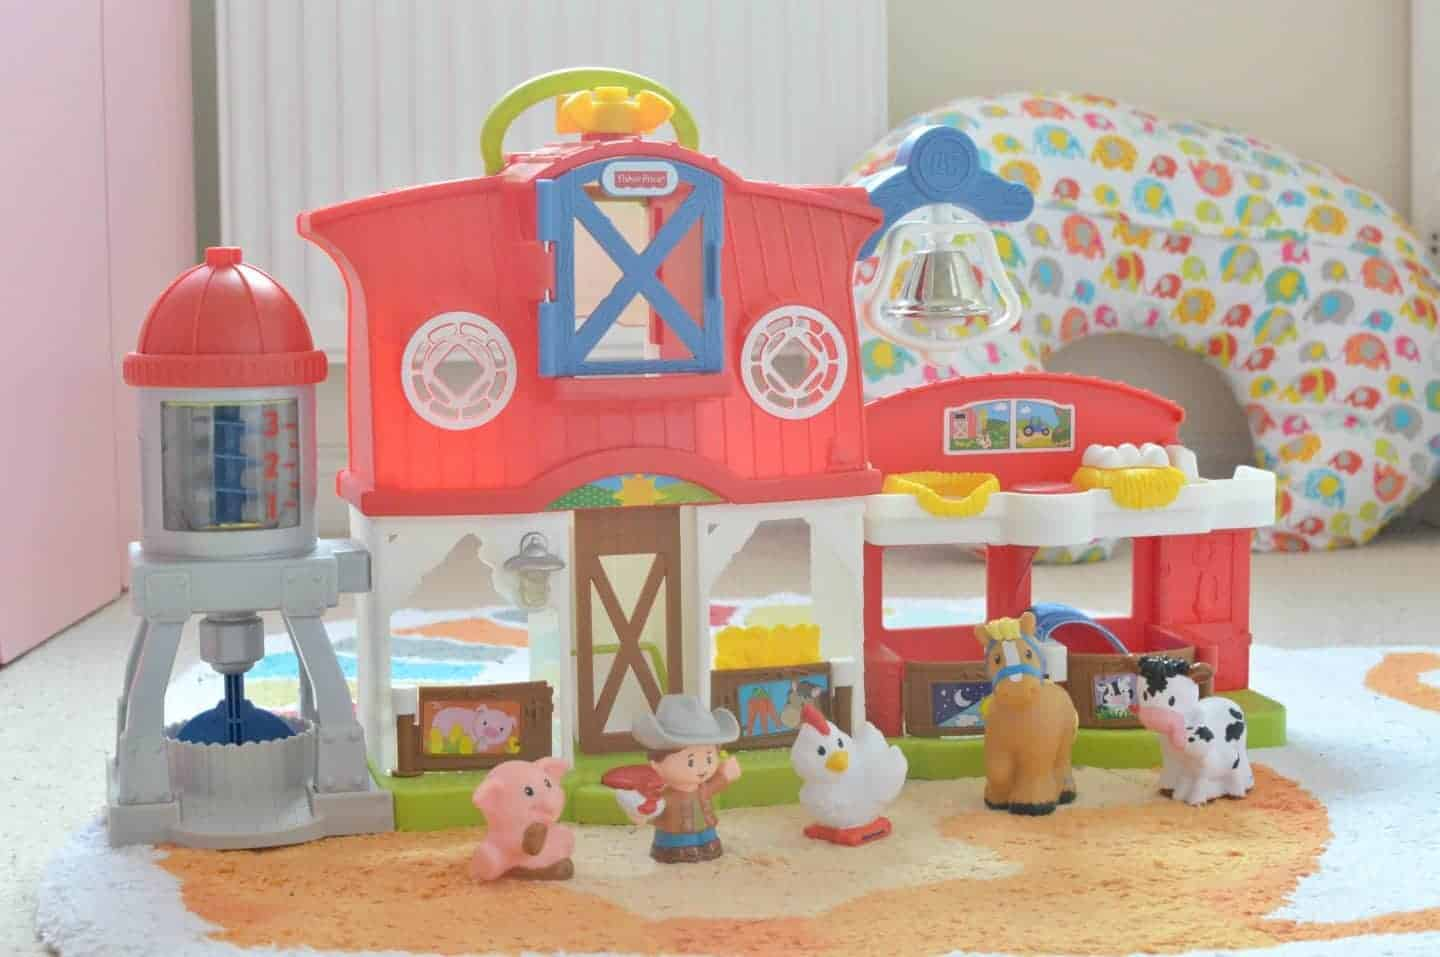 Dining Little People Caring Friends Animals Farm Little People Caring Animals Farm Review Fisher Price Little People Farm Play Set Fisher Price Little People Farm baby Fisher Price Little People Farm